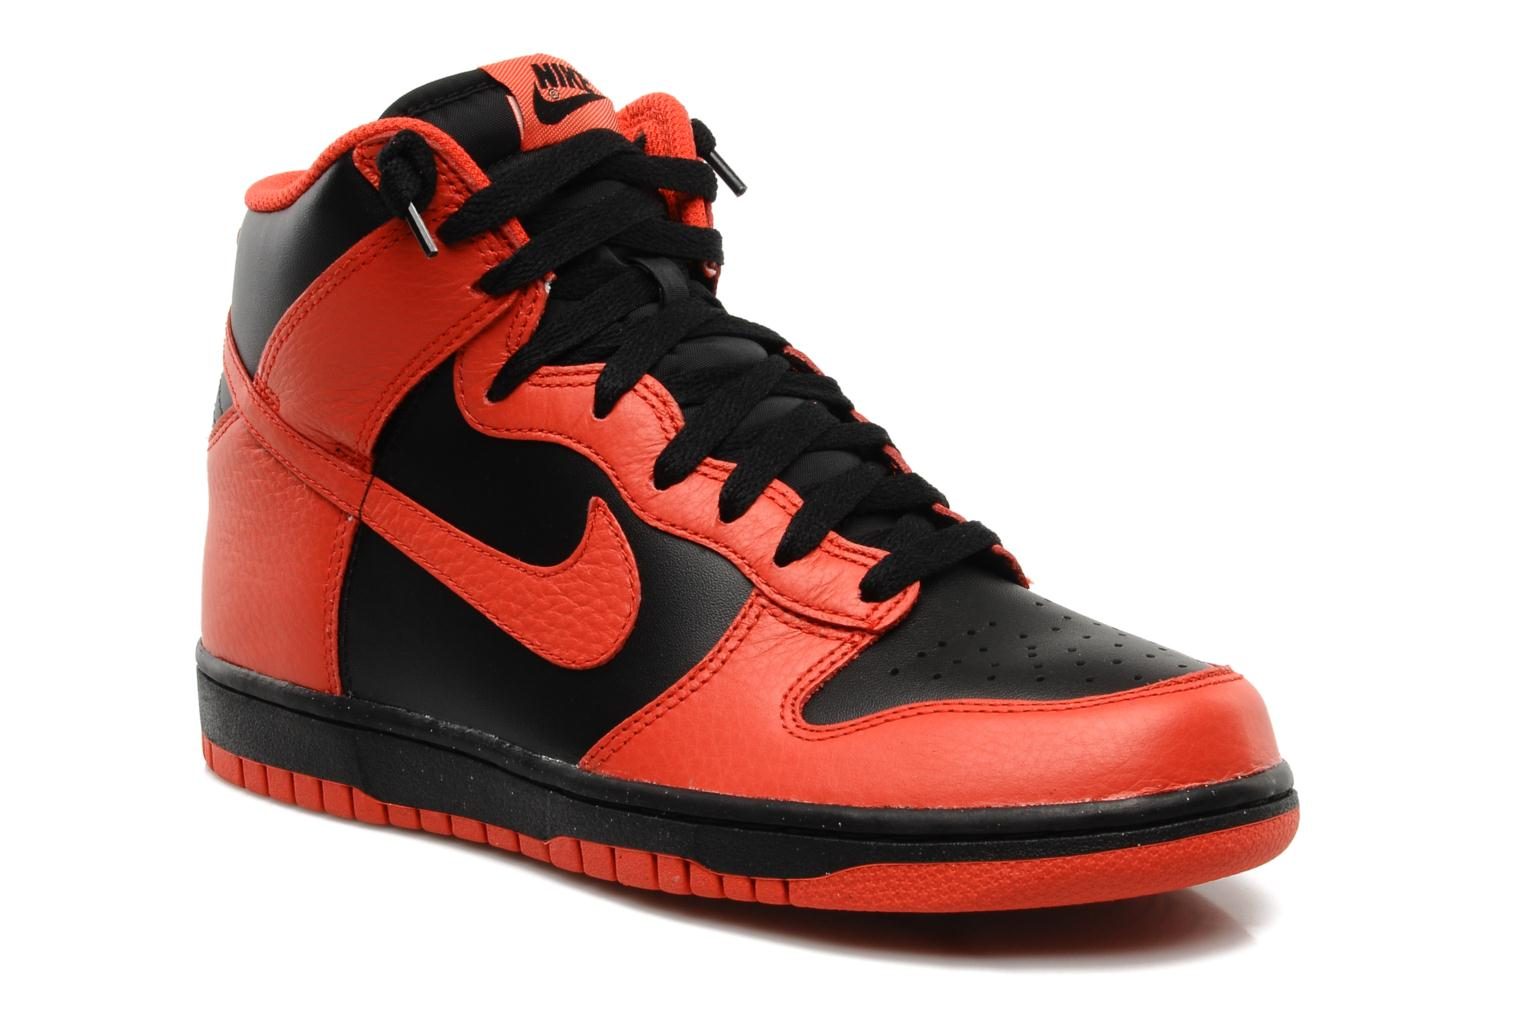 Baskets des éternels ados : Nike Dunk High 08